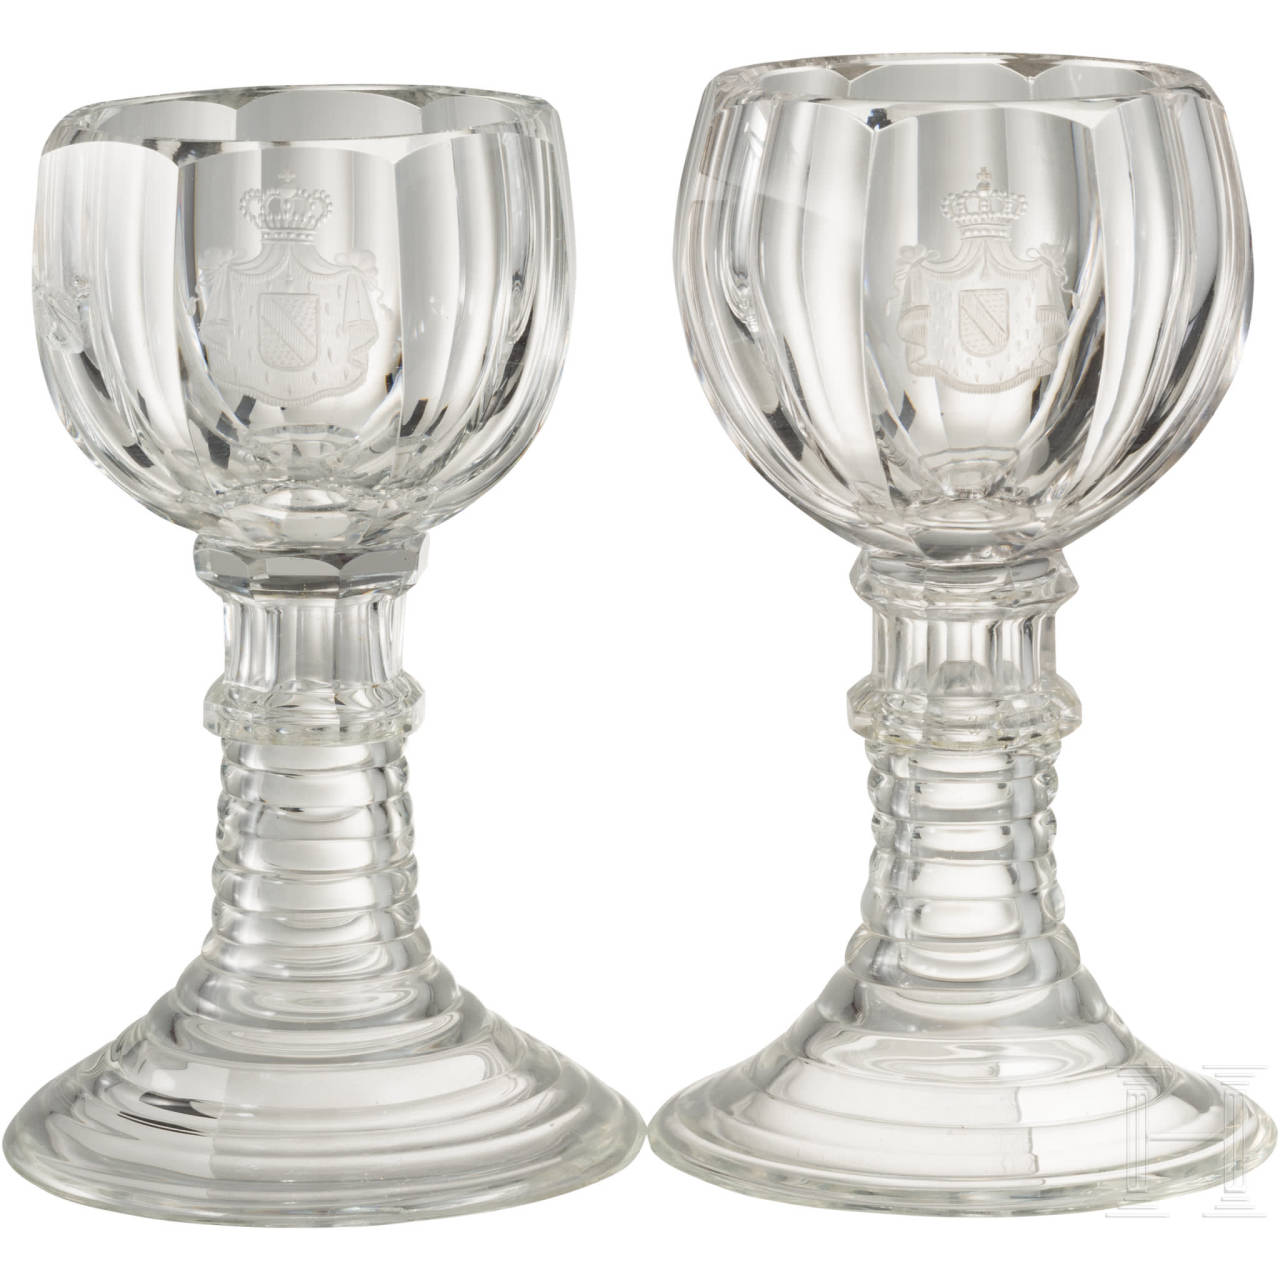 Two liqueur glasses with the coat of arms of the Grand Dukes of Baden